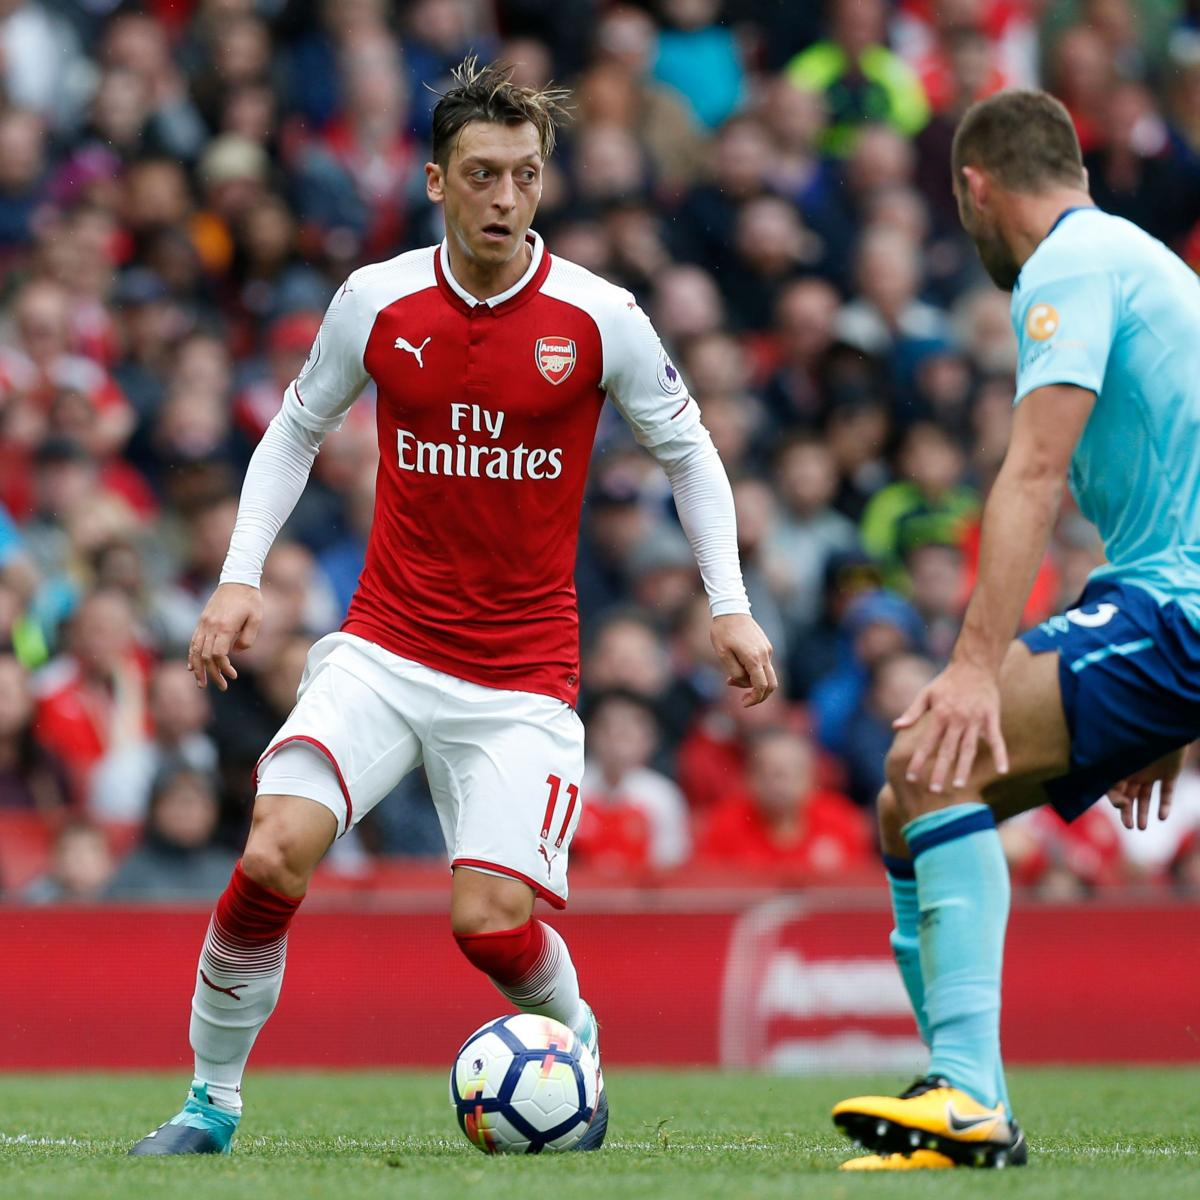 Arsenal Transfer News: Latest Mesut Ozil Rumours, Lucas